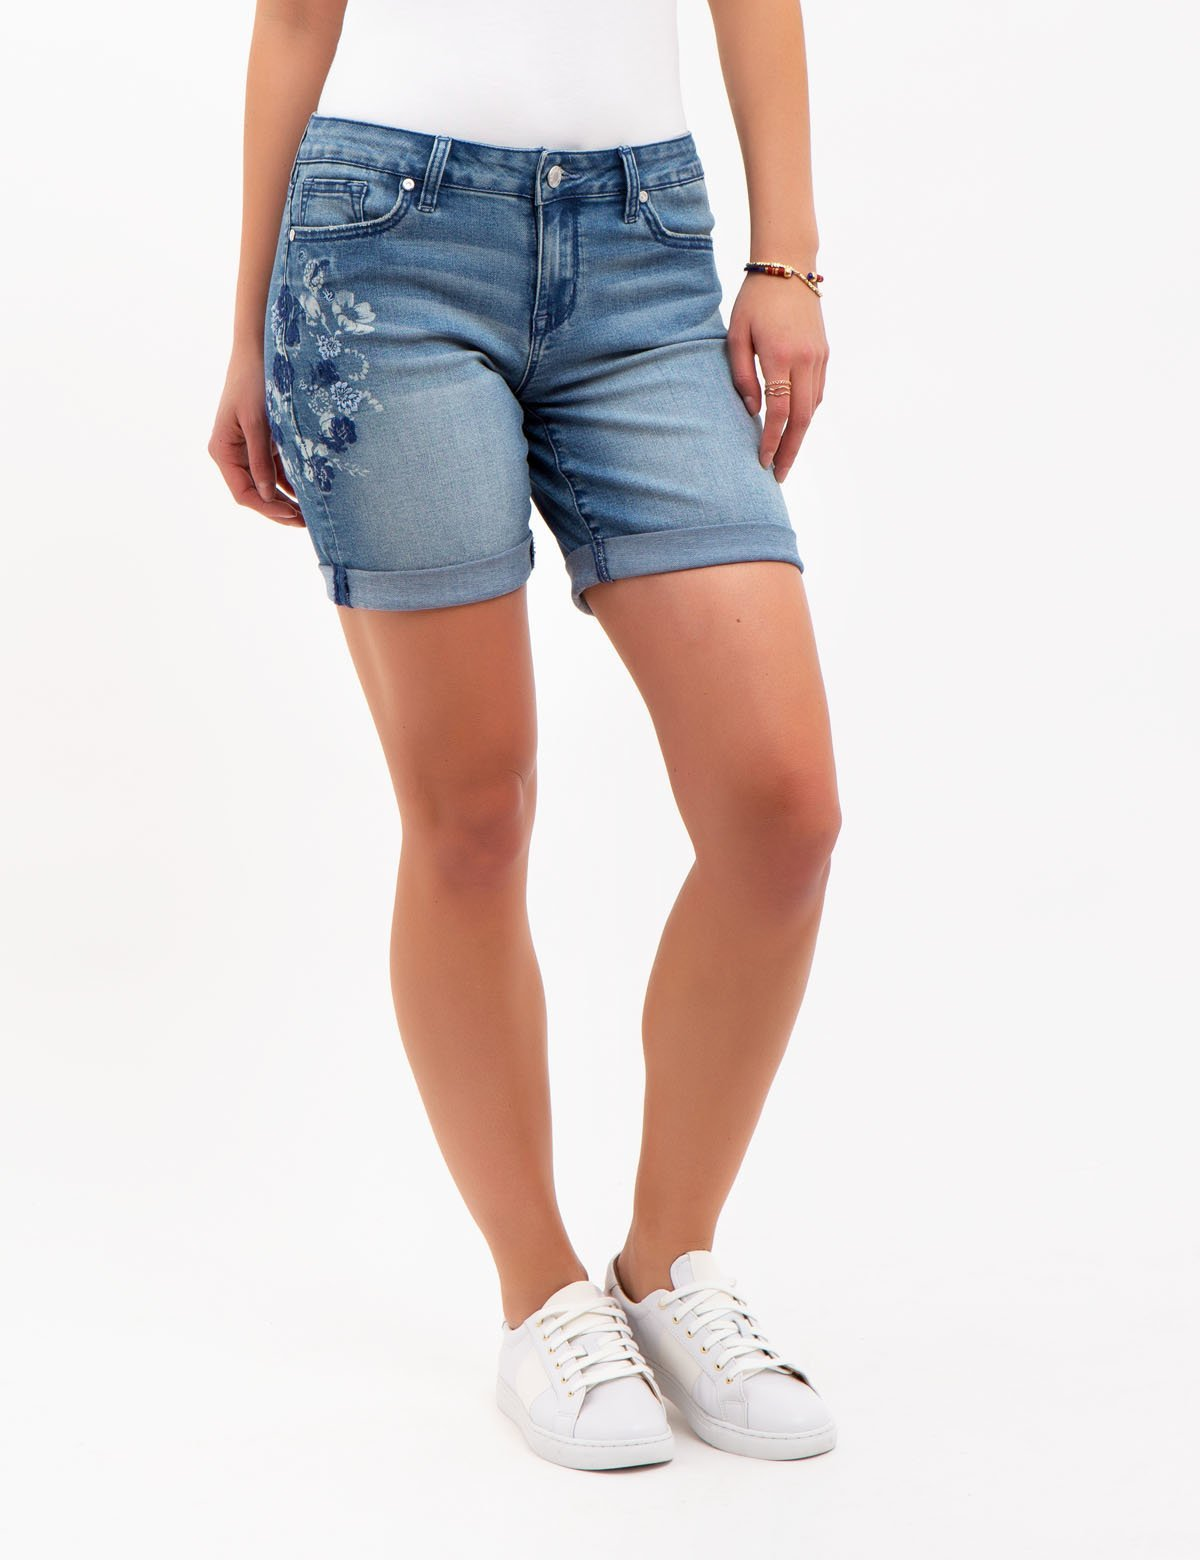 EMBROIDERED DENIM SHORTS - U.S. Polo Assn.